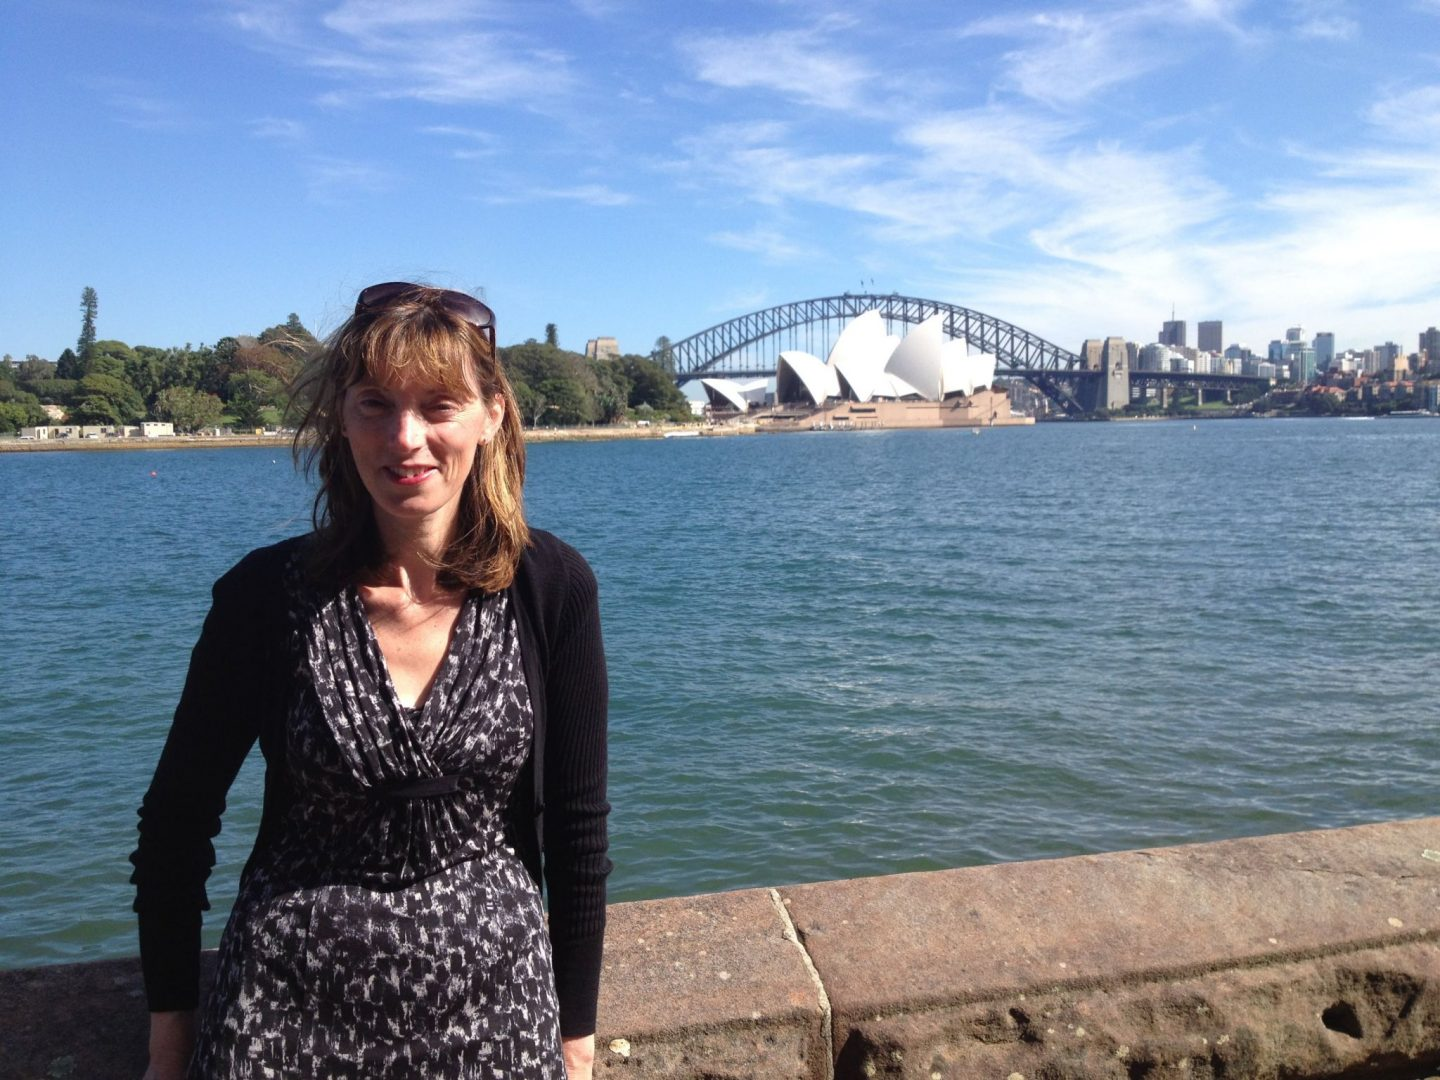 Mum in front of Sydney Harbour Bridge